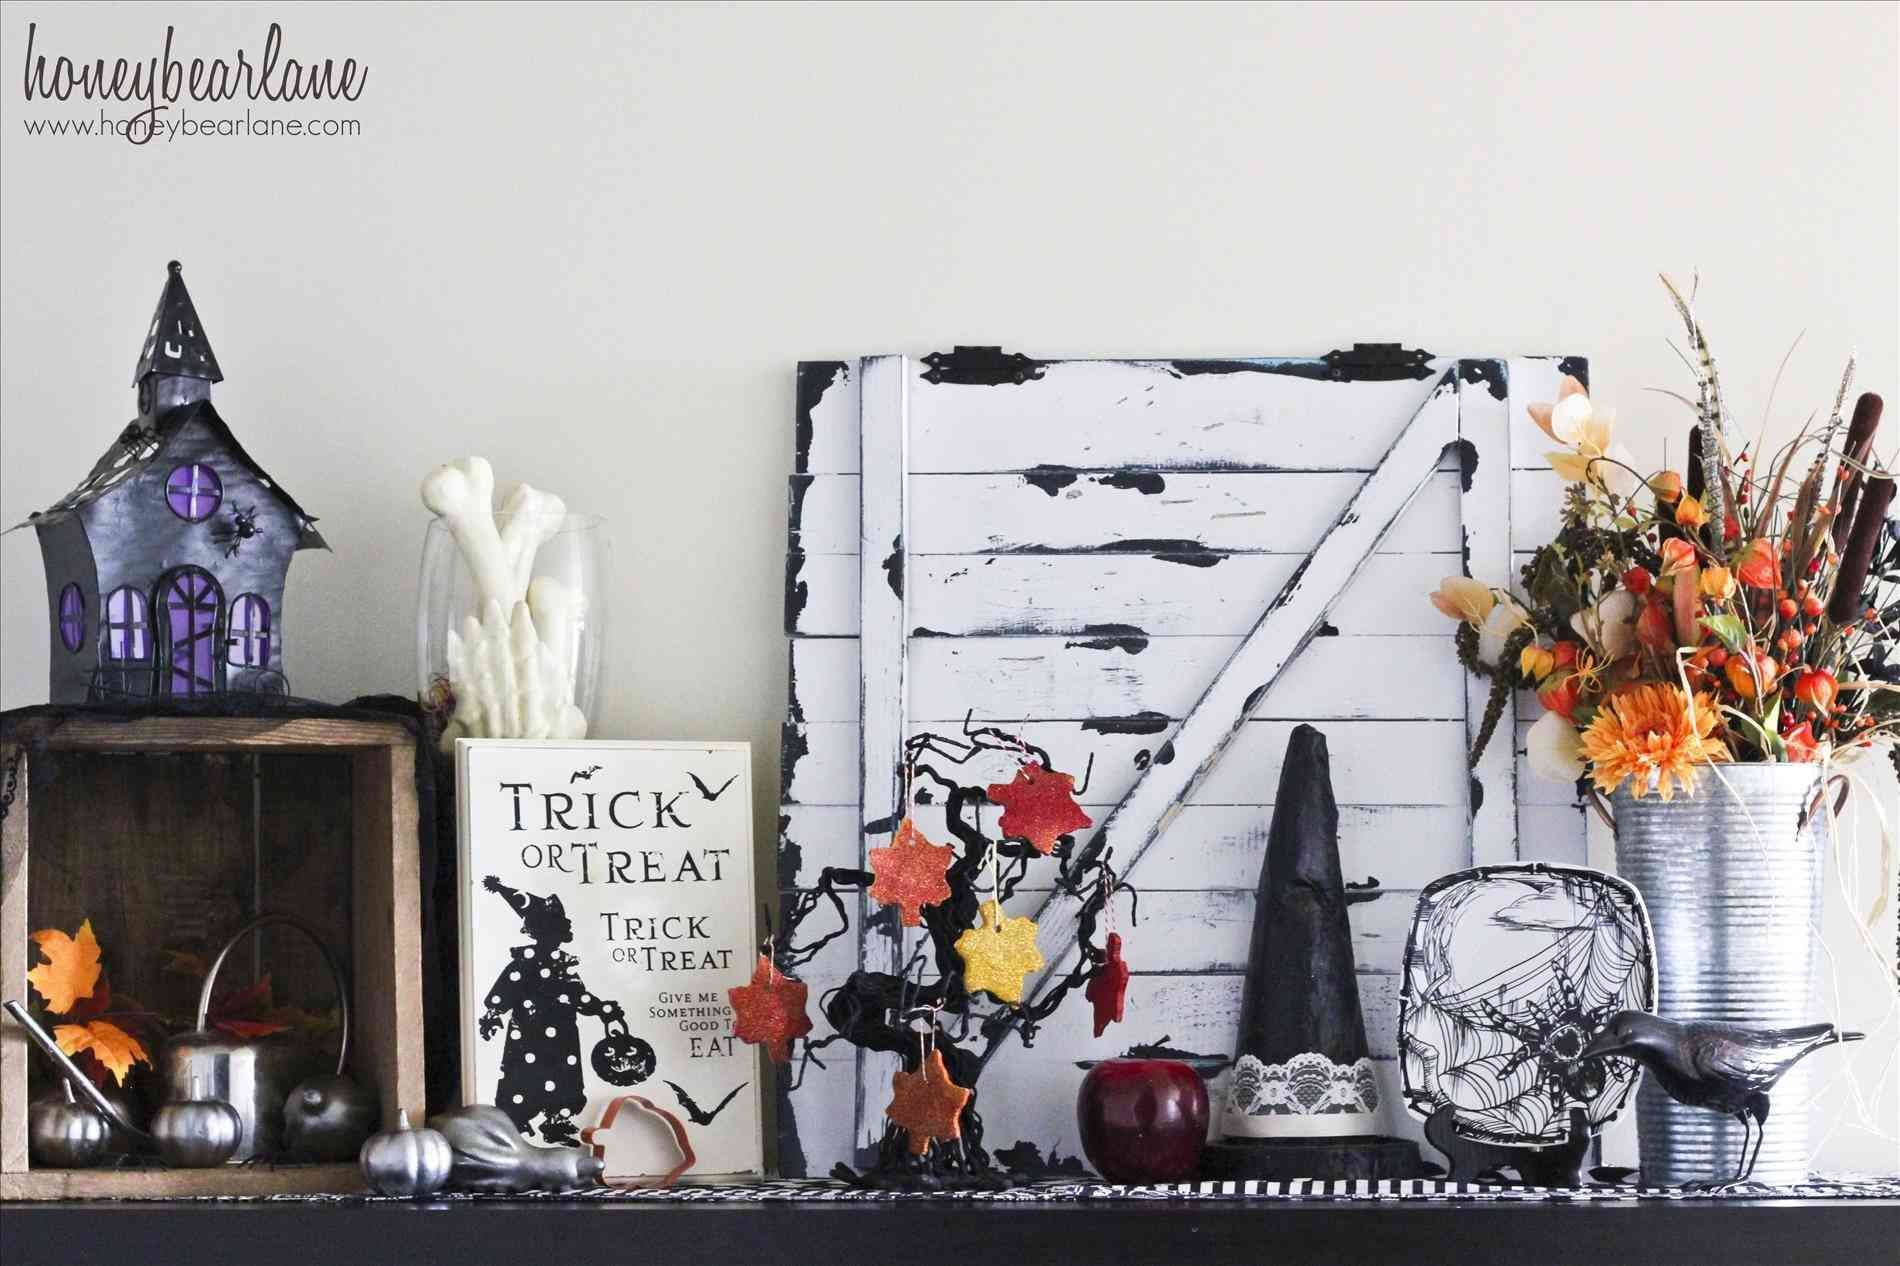 New Post halloween decorations indoor diy visit Bobayule Trending - Diy Indoor Halloween Decorations